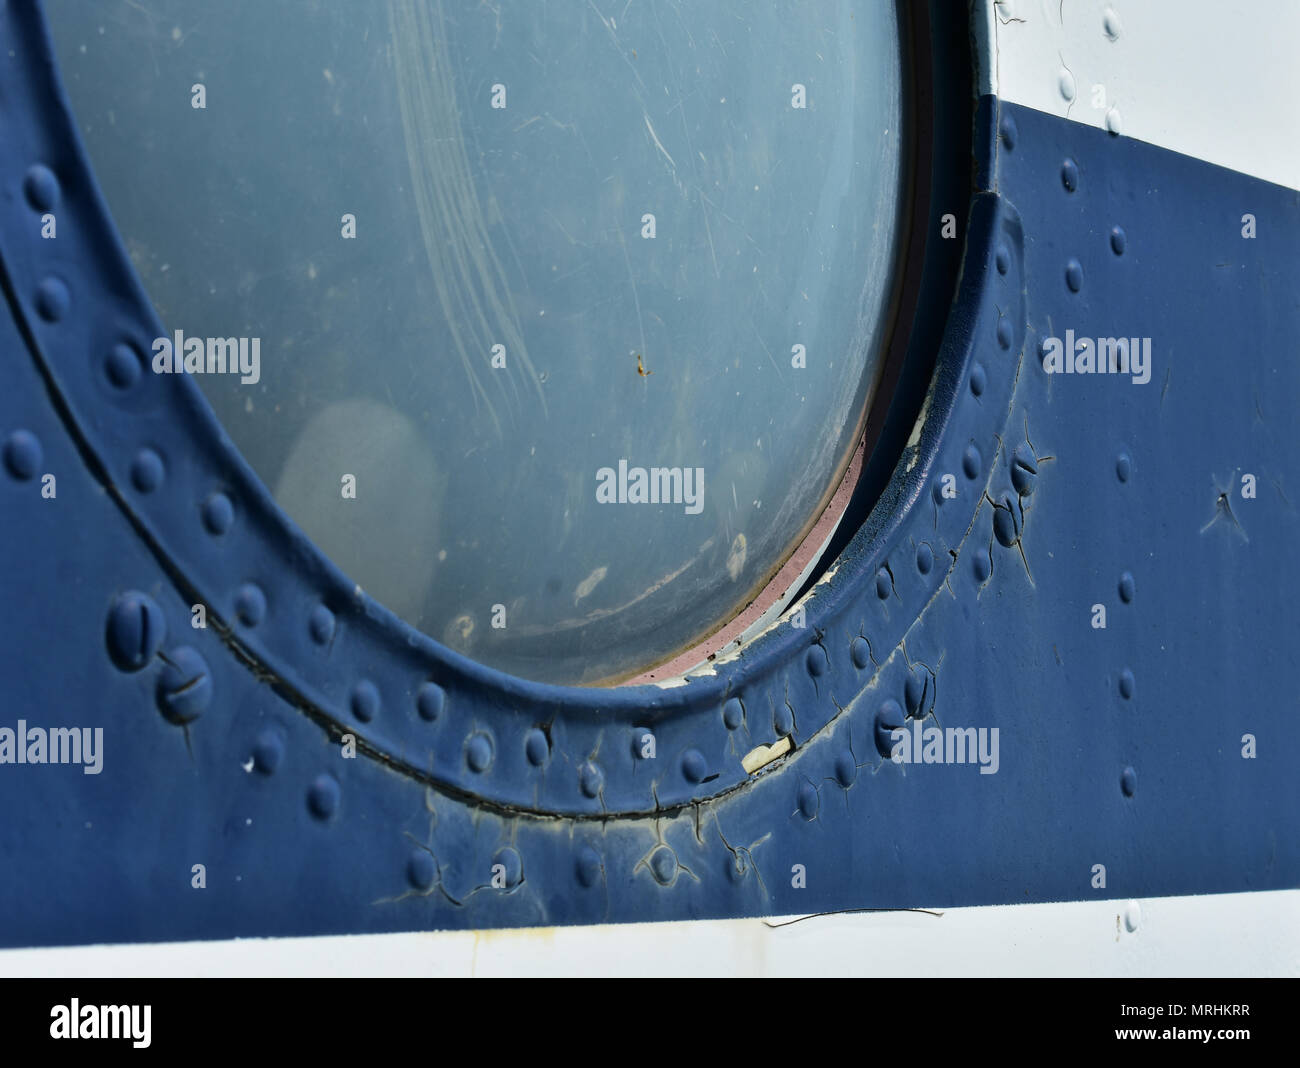 Old helicopter window - Stock Image